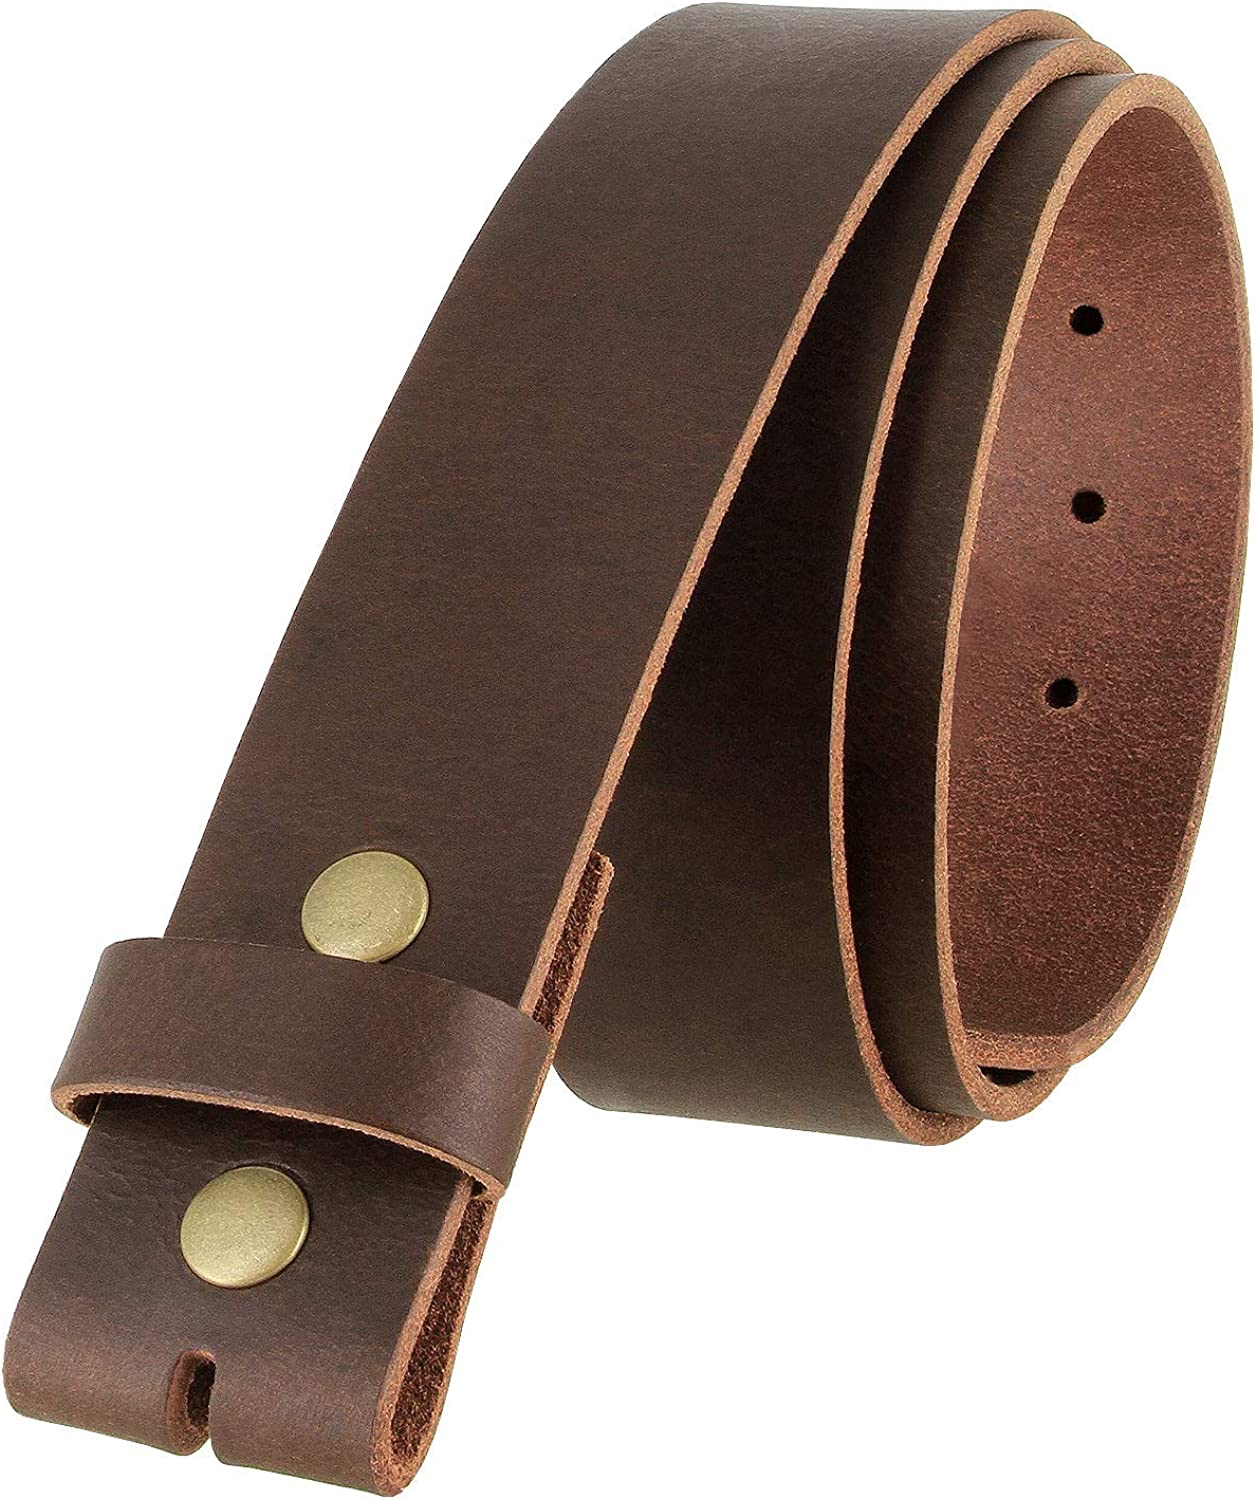 One Piece Full Grain Buffalo Oil Tanned Leather Replacement Belt Strap 1-1/2